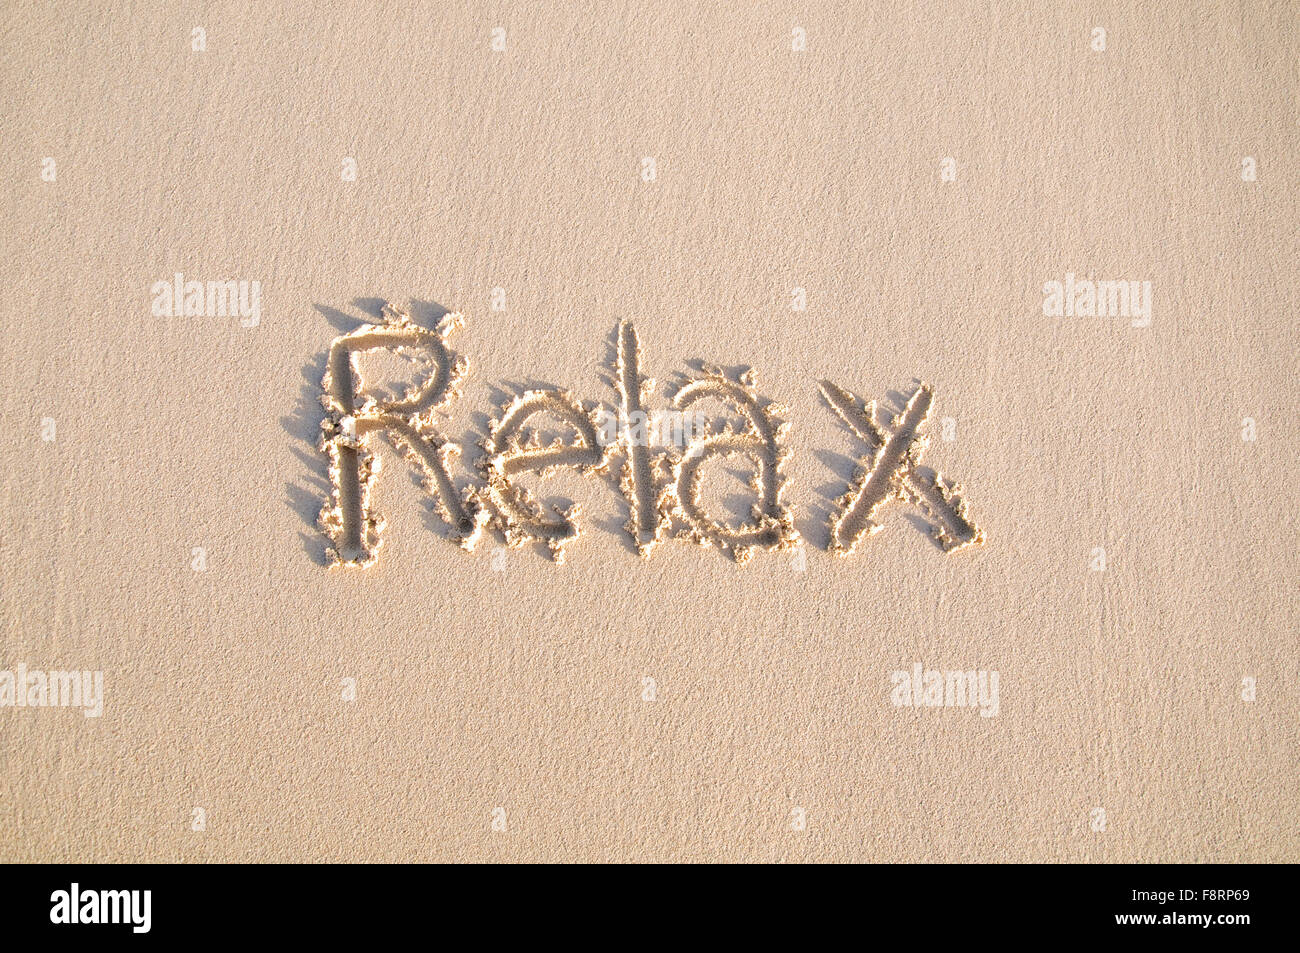 Sand writing. Word 'Relax' written on a sand. - Stock Image